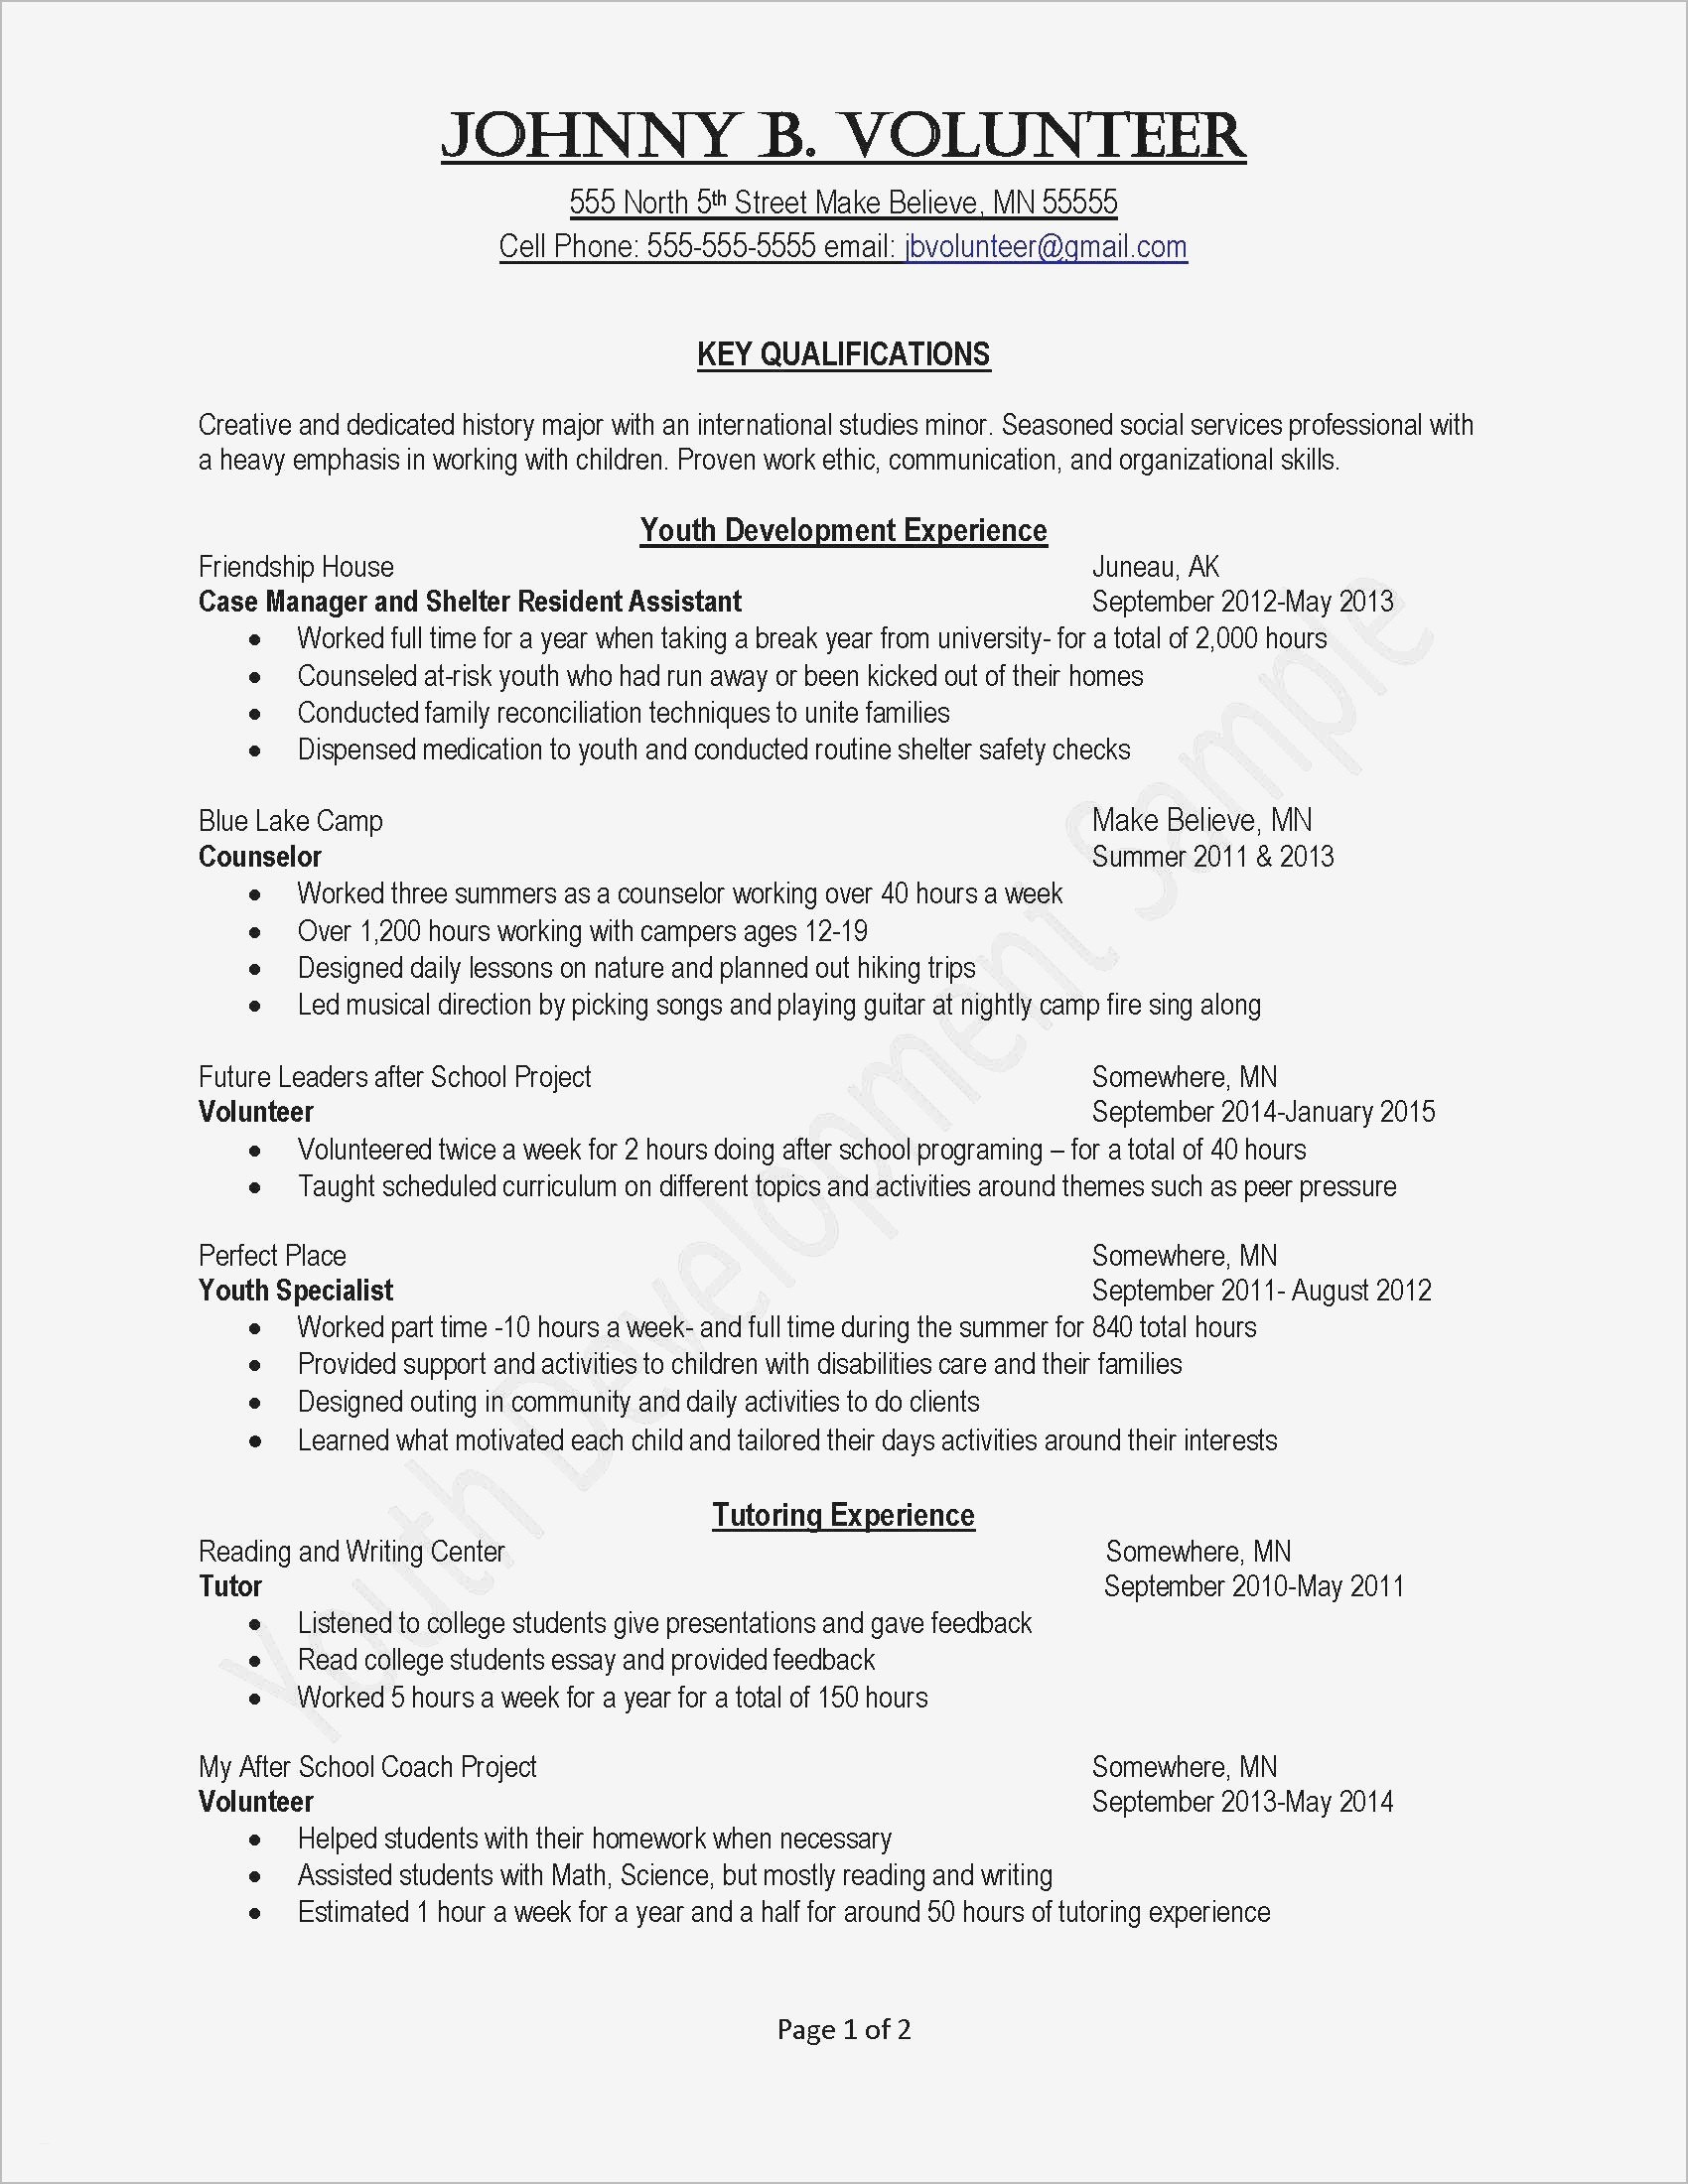 Graphic Design Cover Letter Template - How to Create A Cover Letter for Resume Inspirational Job Fer Letter